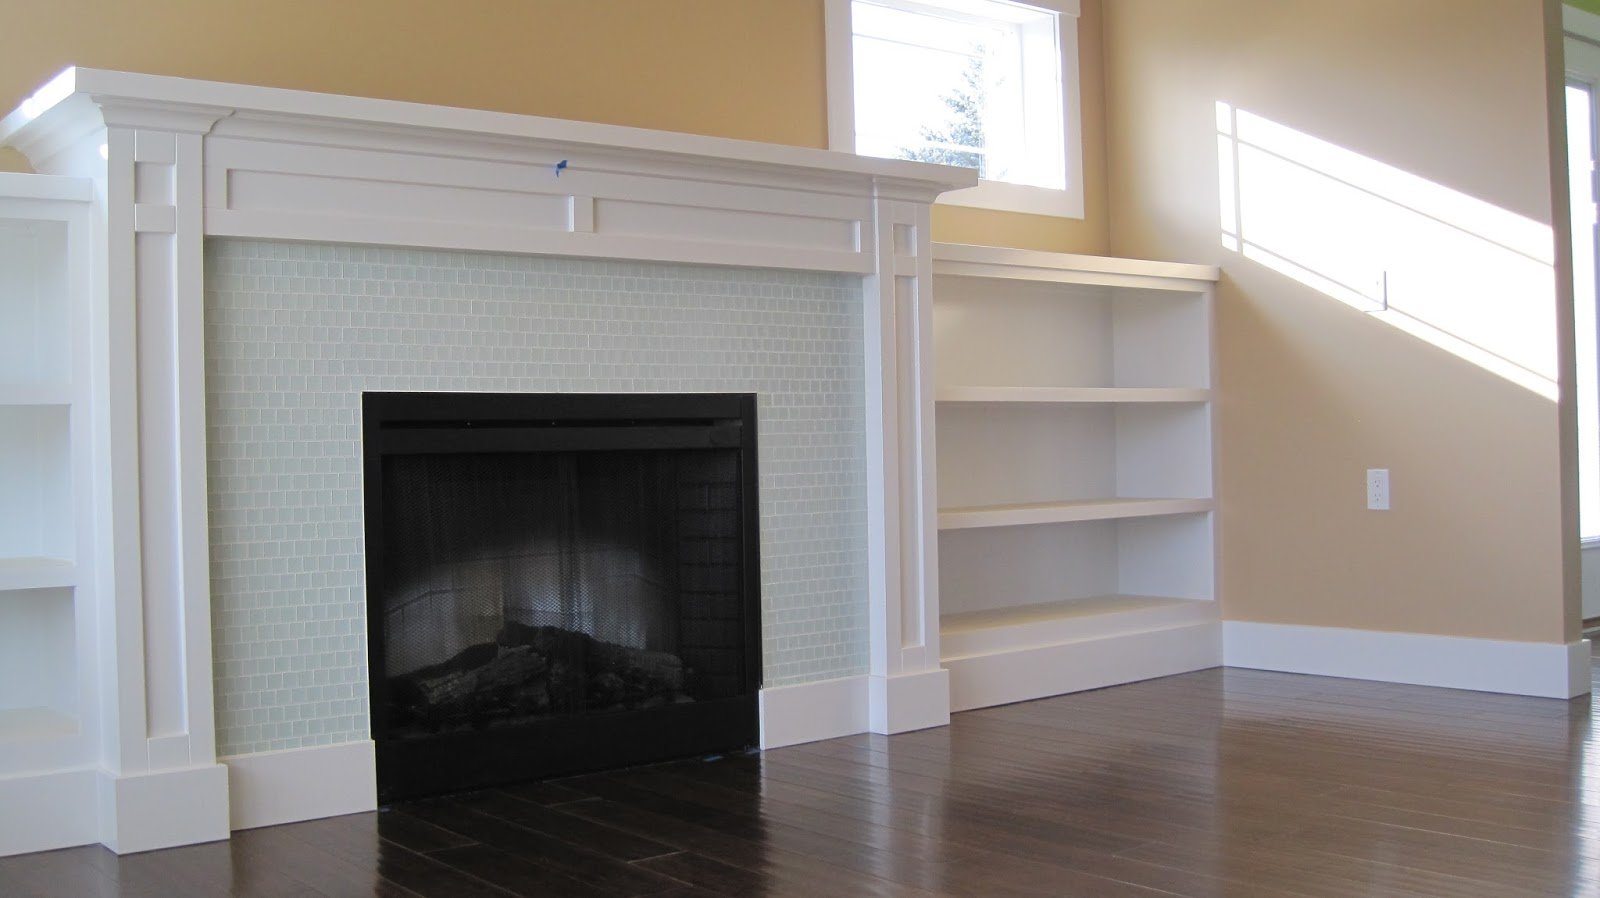 Amazing photo of hardwood floors fireplace with built in shelves.JPG with #766755 color and 1600x898 pixels